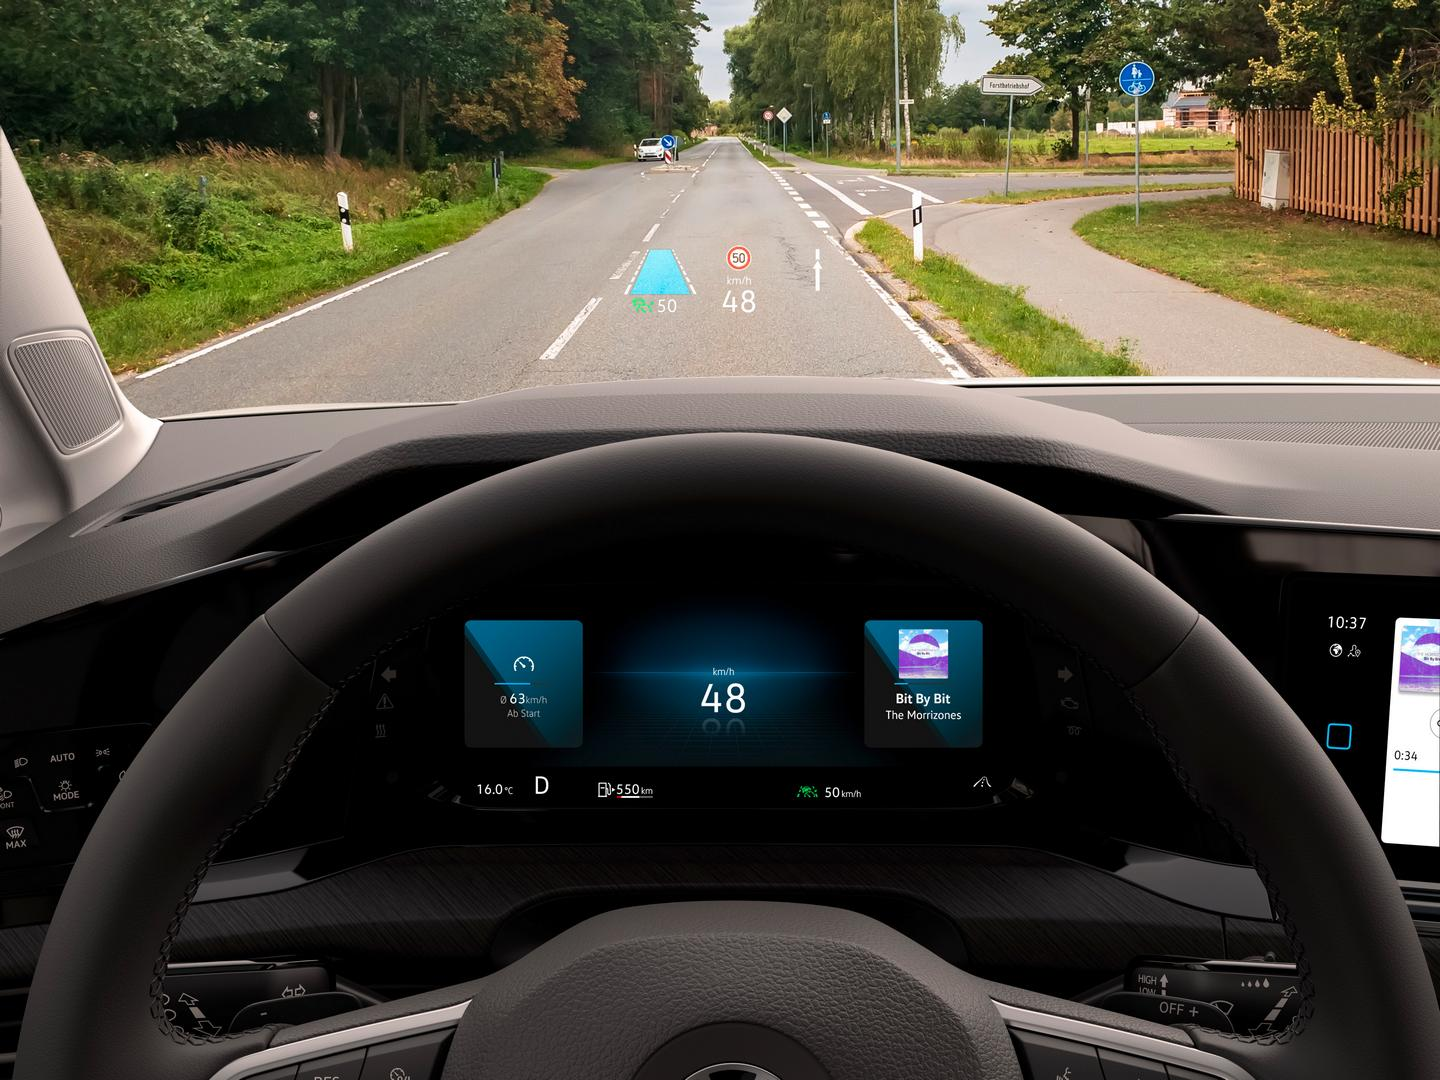 VW GOLF 8 Heads up Display